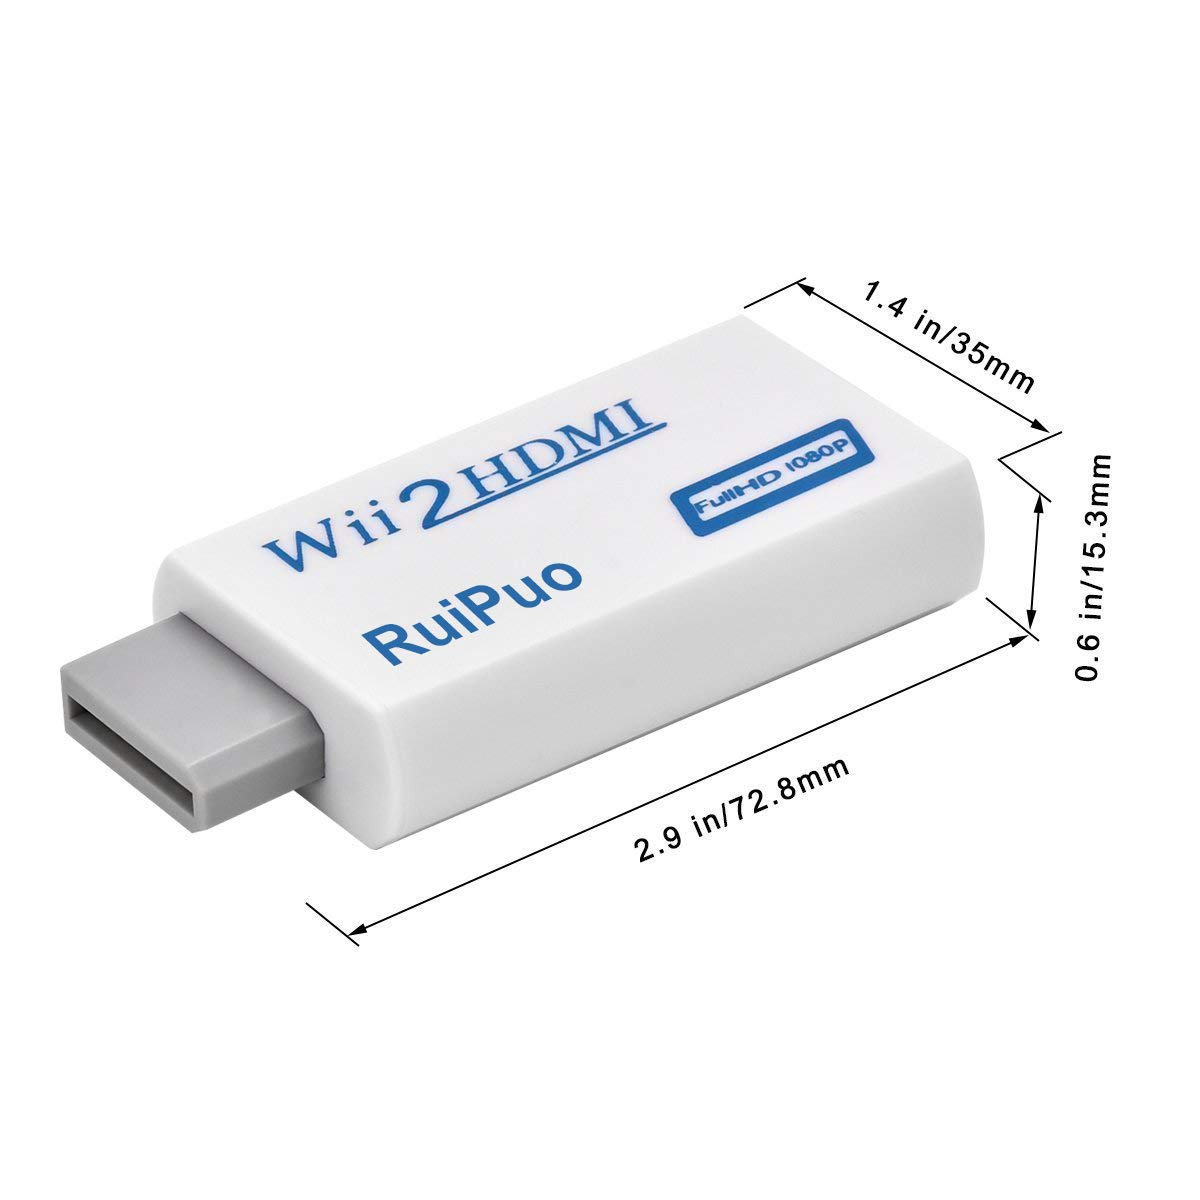 Explore Nes Circuit Bend And More Audio Wii To Hdmi Converter Output Video Adapter With 35mm Supports All Display Modes Best Compatibility Stability For